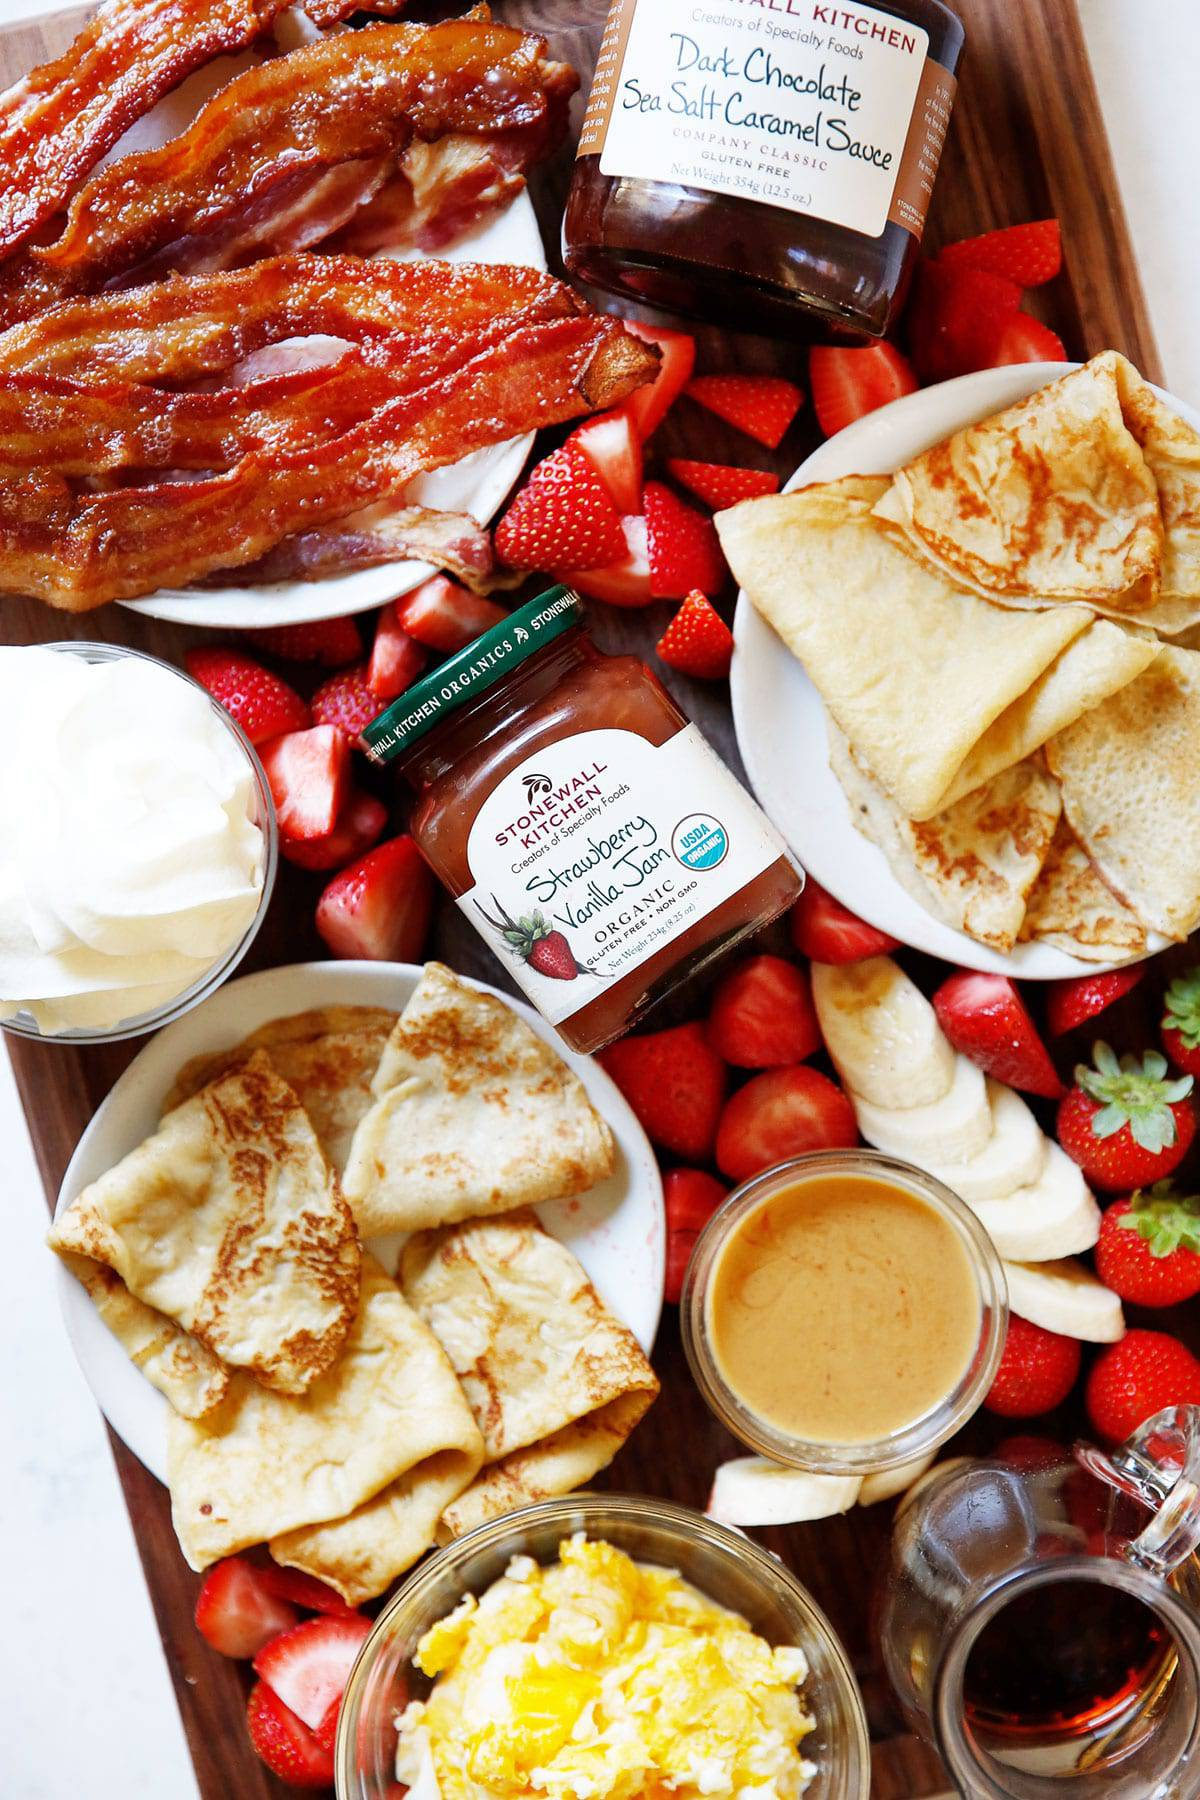 A diy crepe bar on a board with fruit, jams, eggs and bacon.